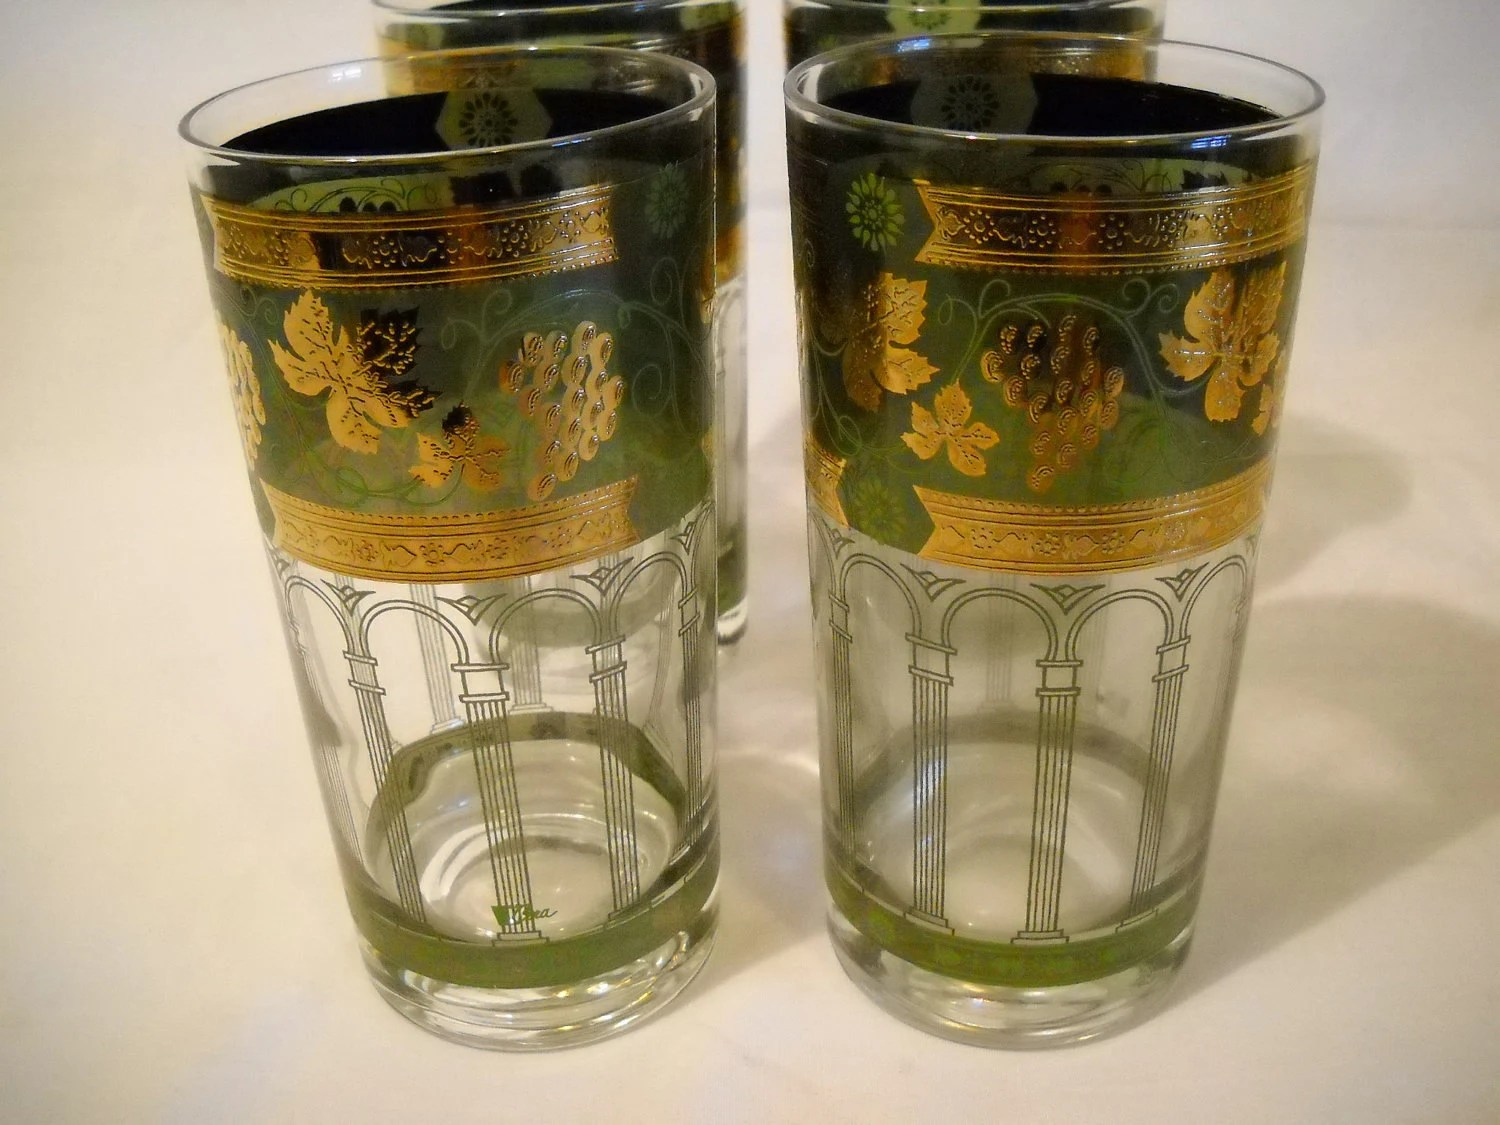 Drinking Glasses Designs Drinking Glasses With Raised Gold And Green Design By Cora